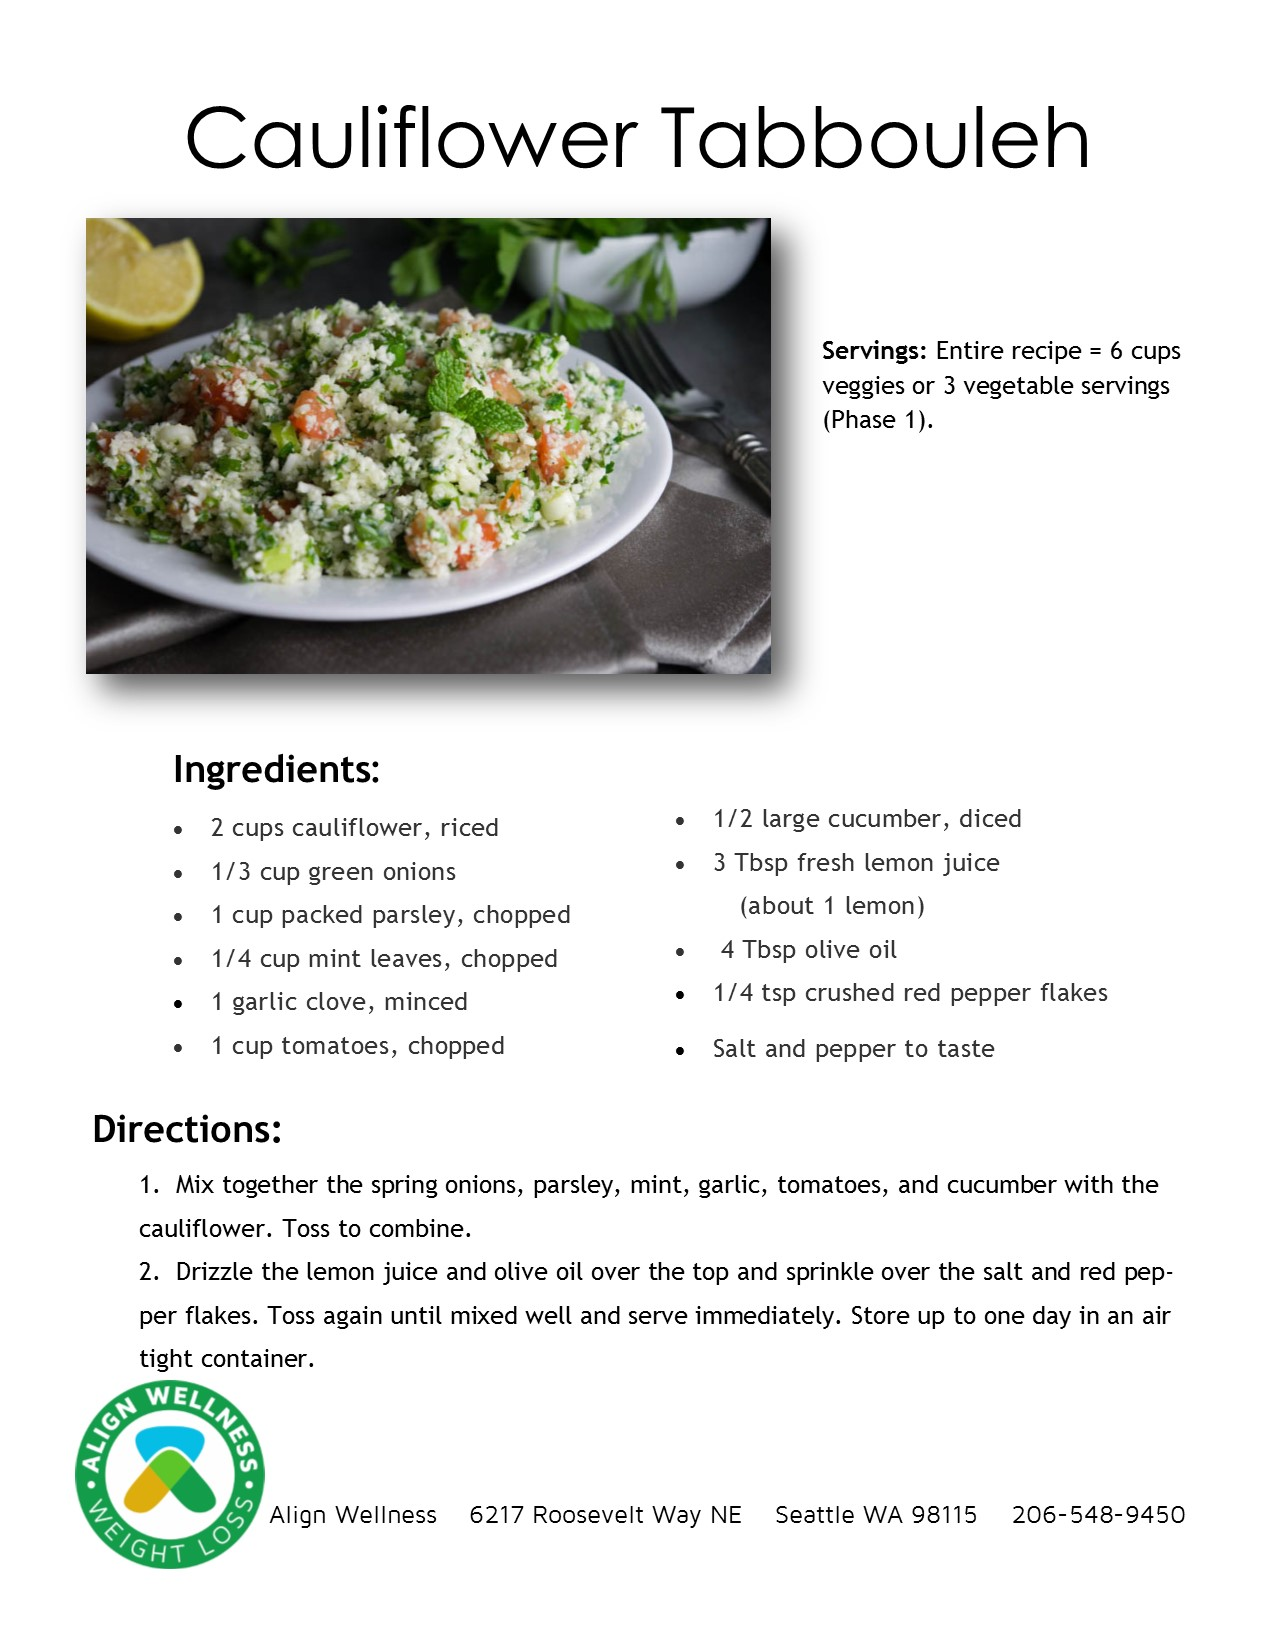 Cauliflower Tabbouleh Ideal Protein Recipe